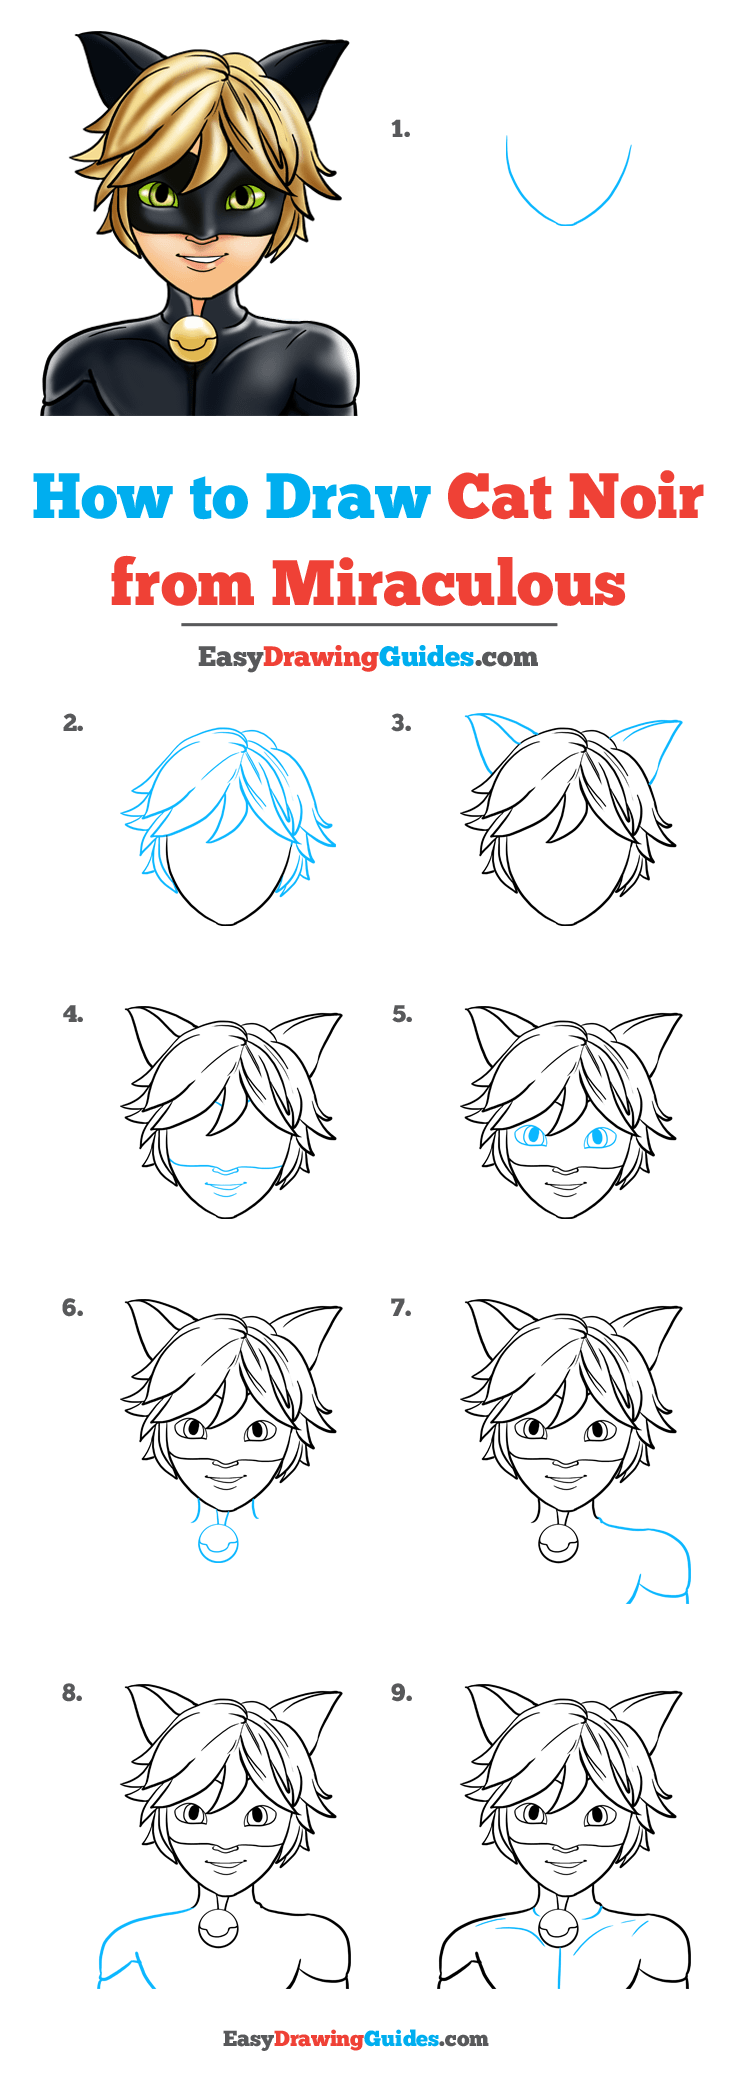 How to Draw Cat Noir from Miraculous